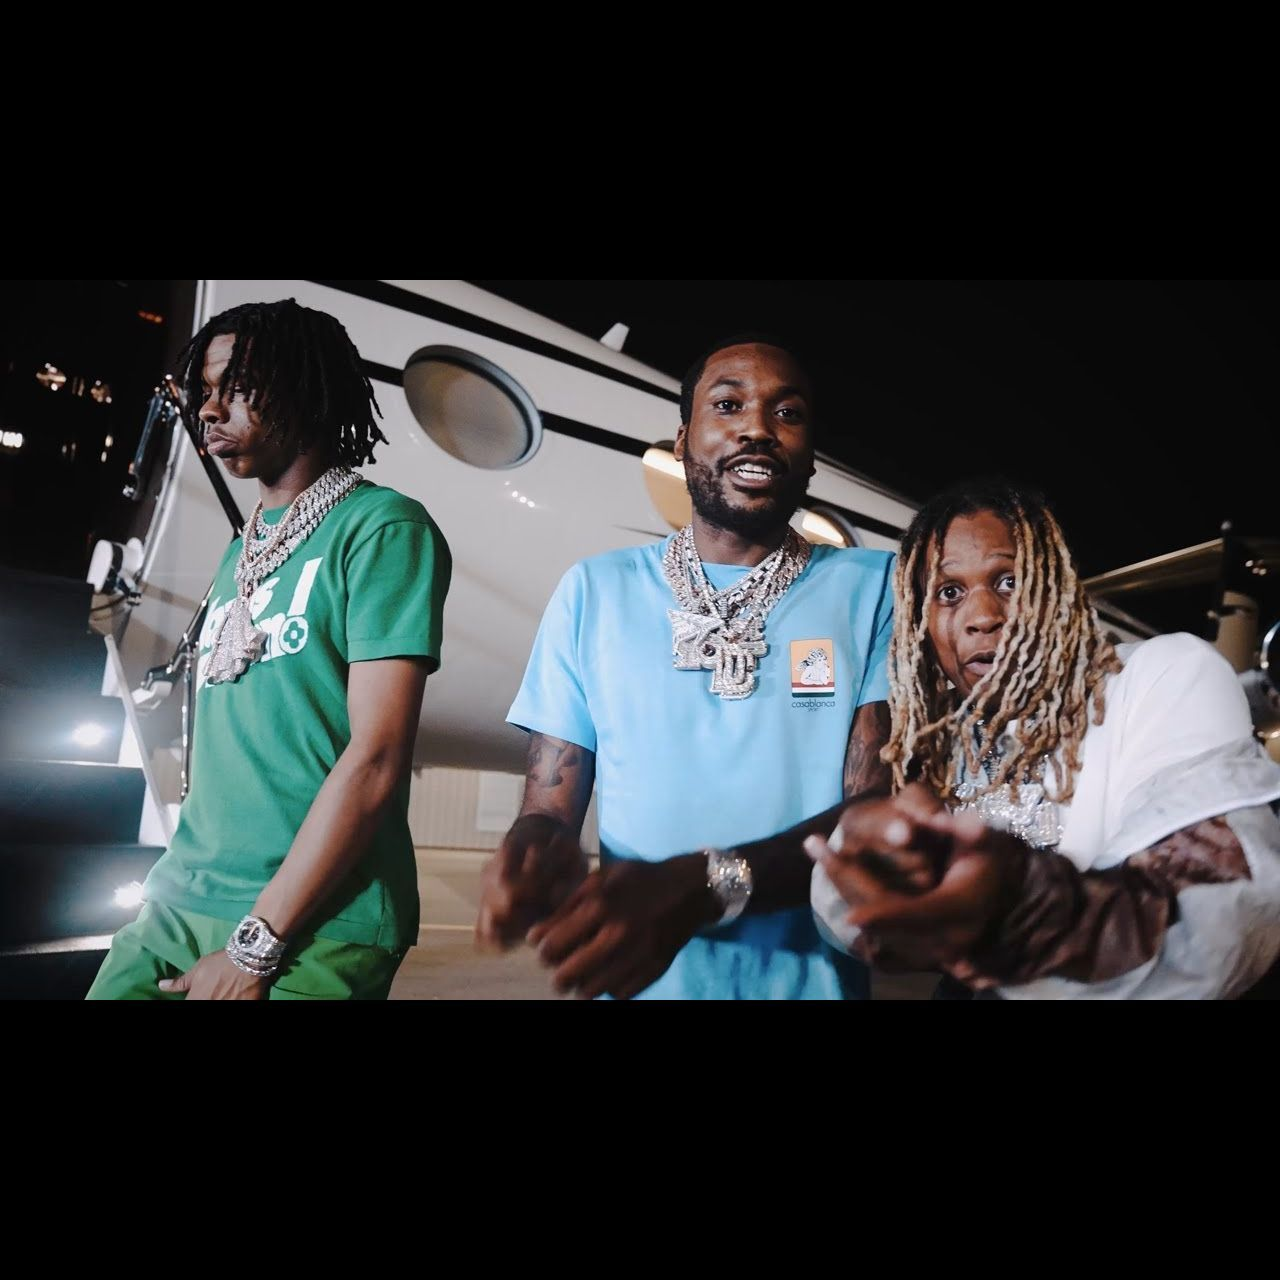 Meek Mill - Sharing Locations (ft. Lil Baby and Lil Durk) (Thumbnail)